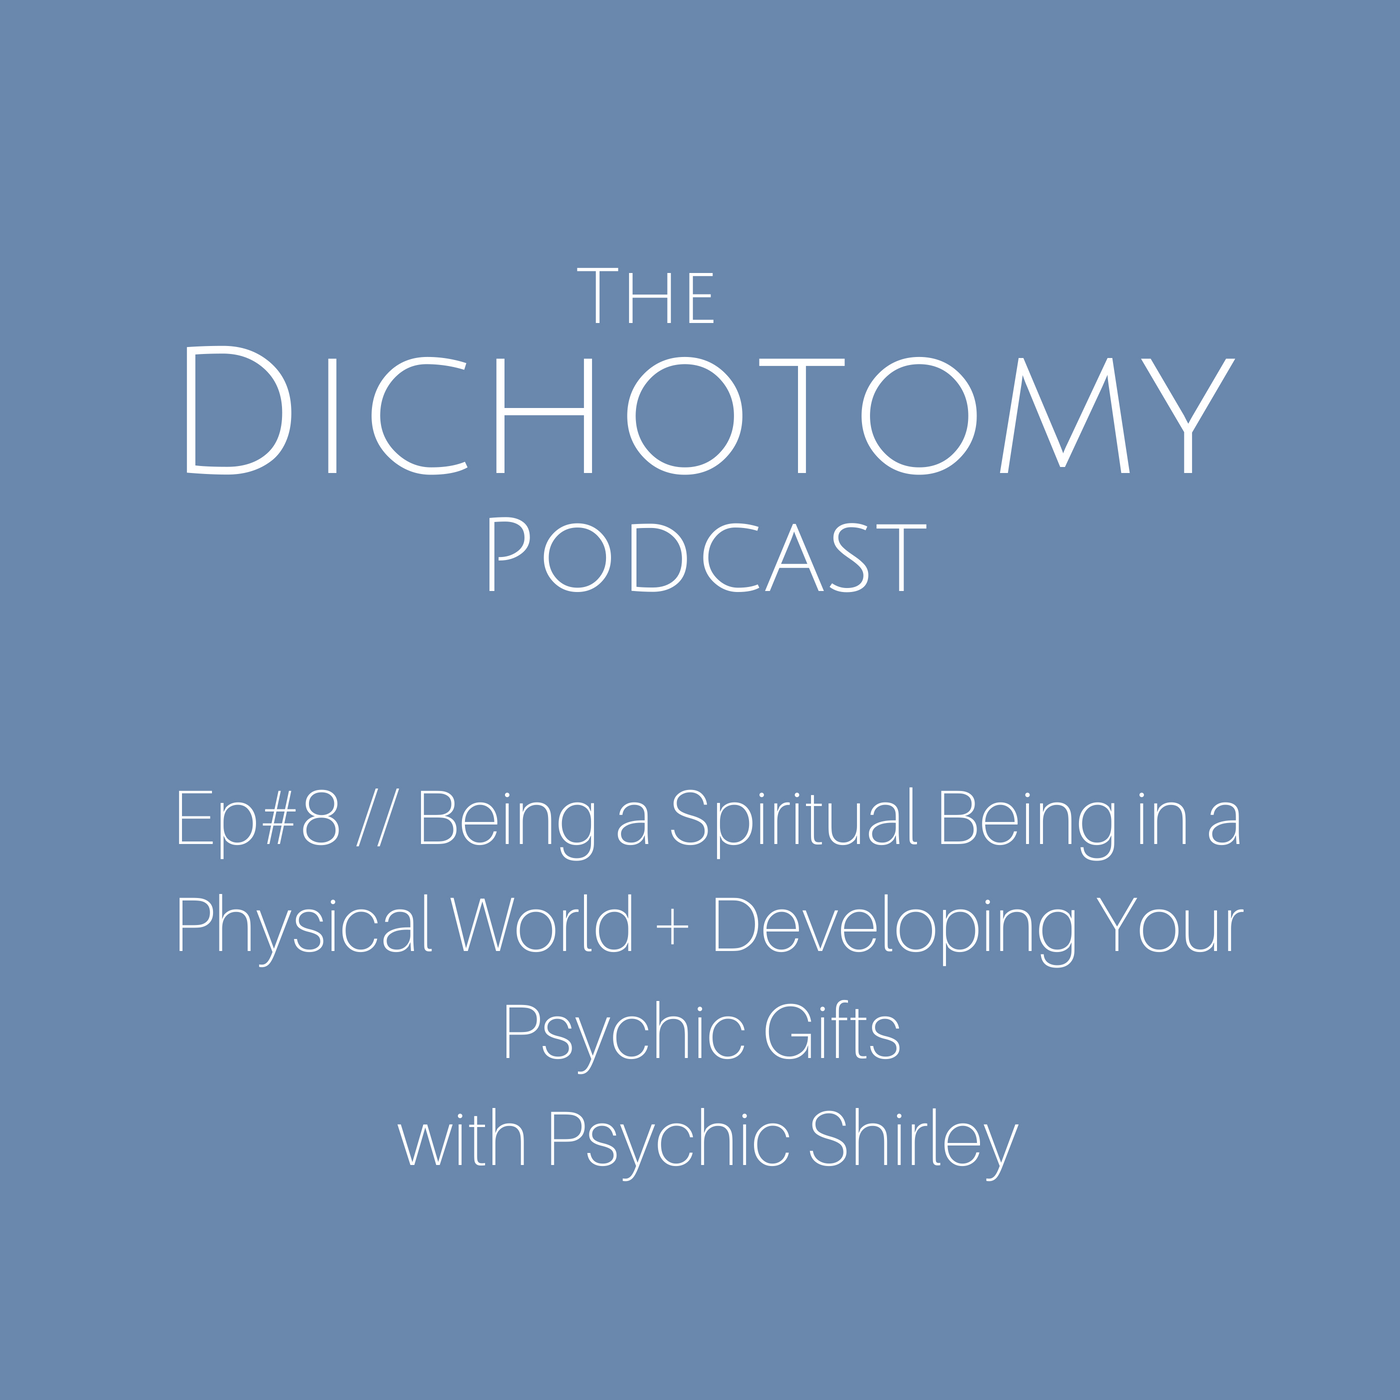 [IN ENGLISH] A Spiritual Being in a Physical World + Developing Your Psychic Gifts with Psychic Shirley